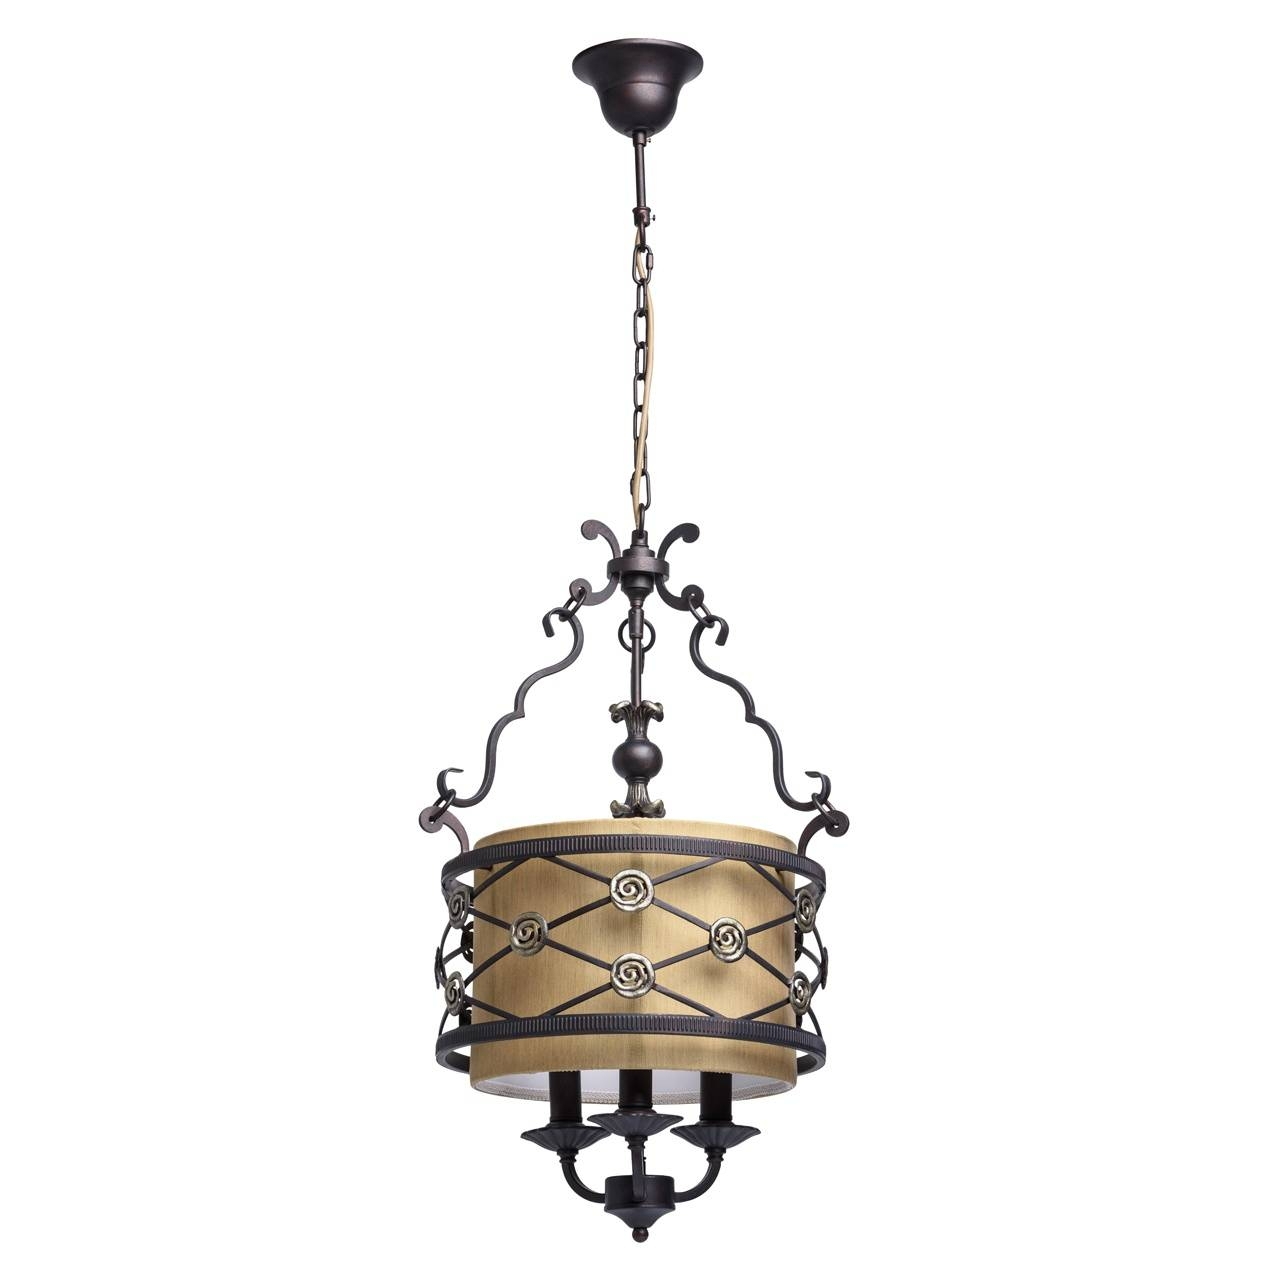 Pendant Light Chiaro 382016103 intended for Wrought Iron Lights Pendants (Image 9 of 15)